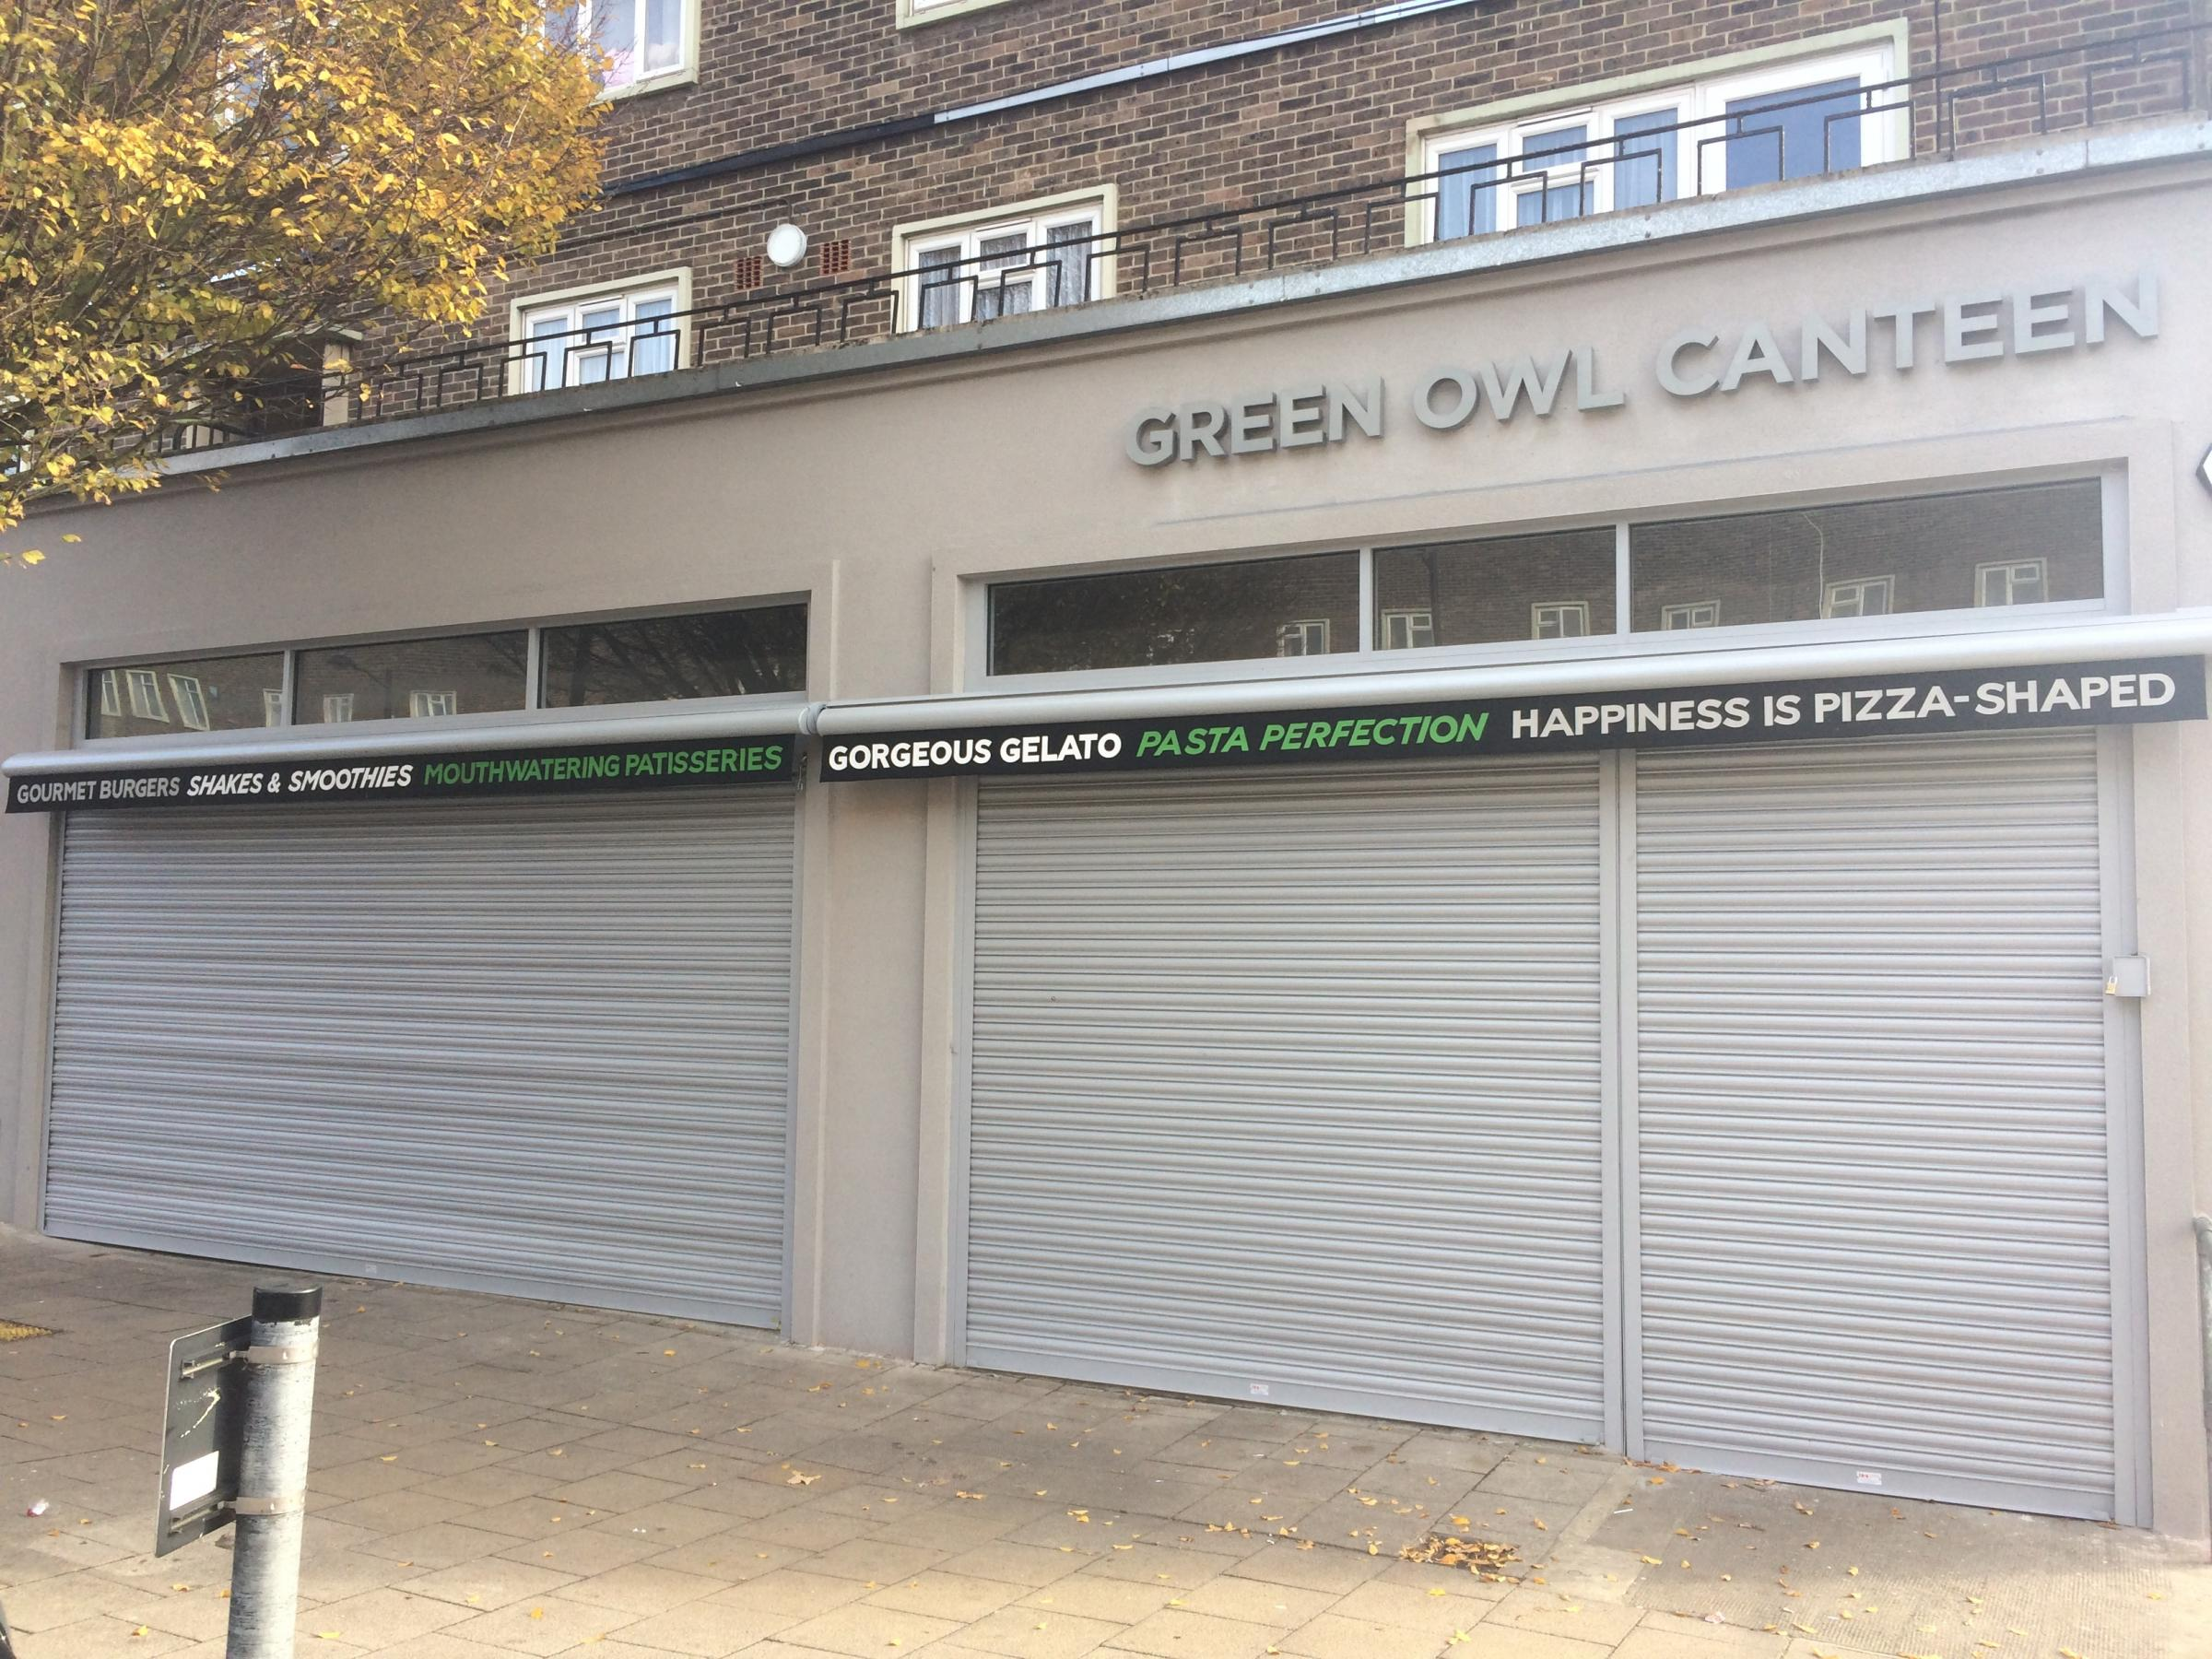 The Green Owl Canteen has ceased trading